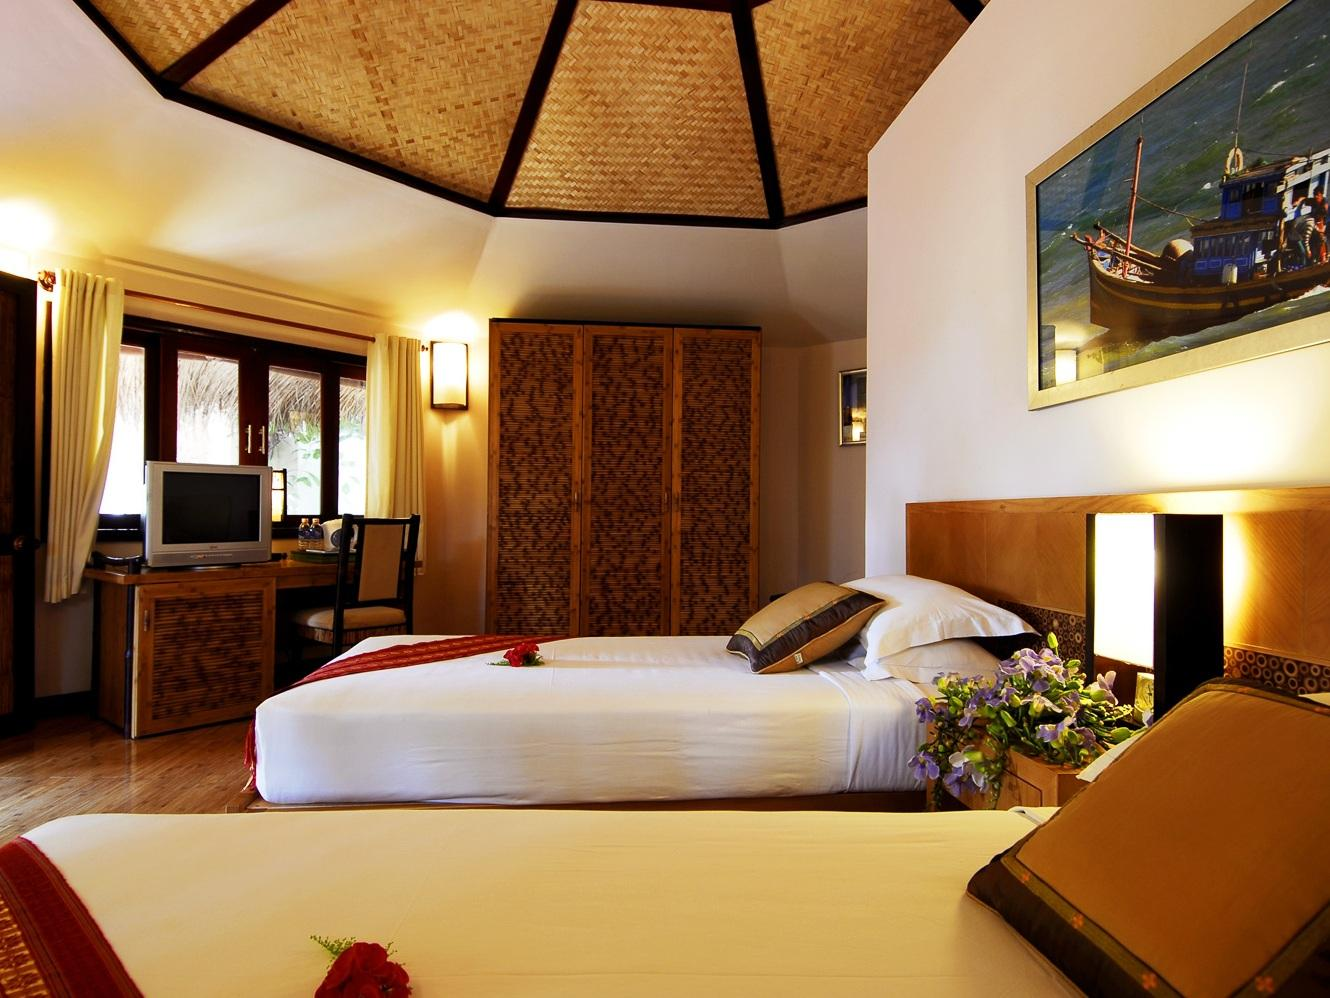 Bungalow con vista al Jardín - Cama matrimonial (Garden View Bungalow Double Bed)